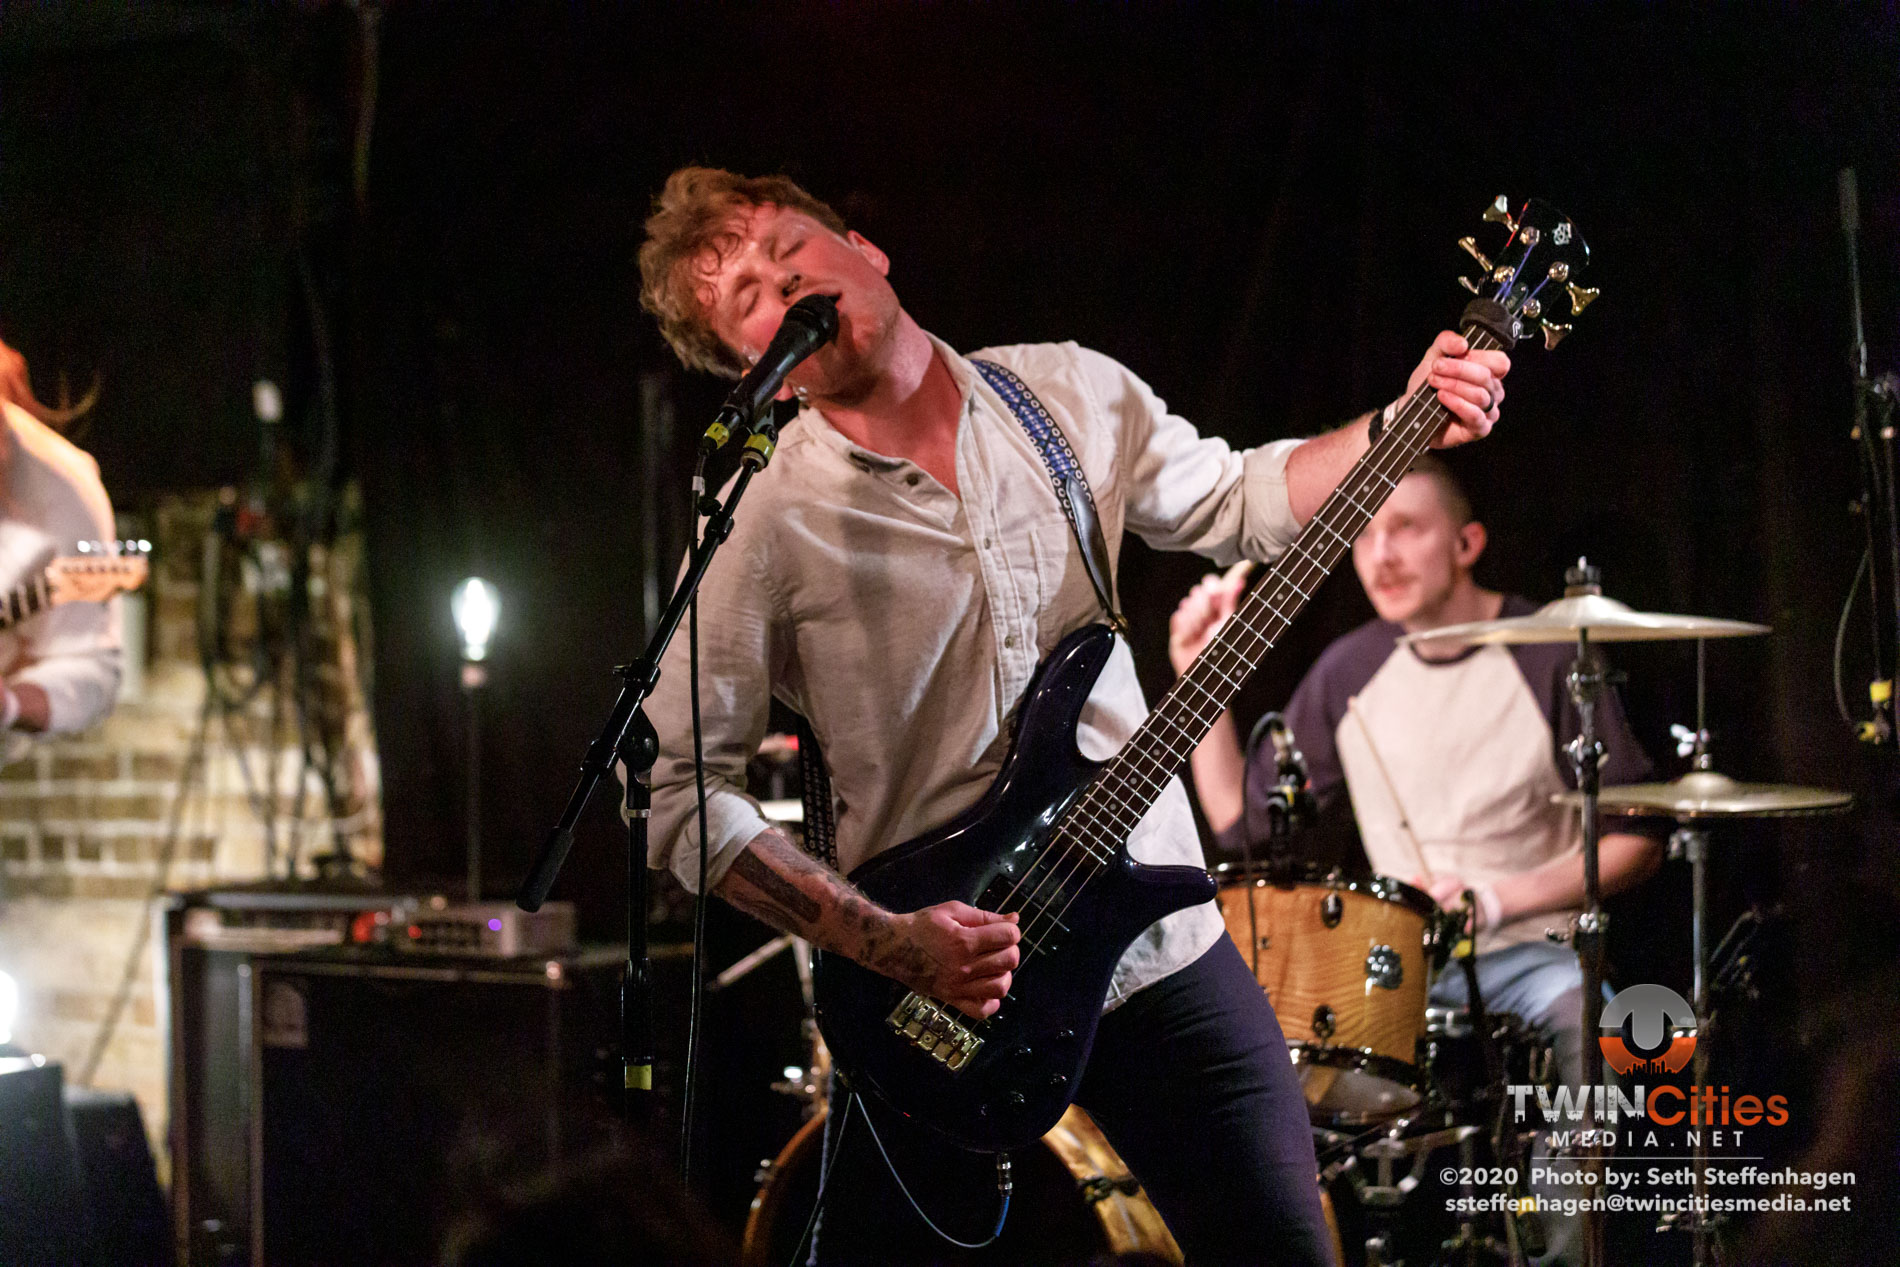 March 1, 2020 - Minneapolis, Minnesota, United States - Careful Gaze live in concert at Whiskey Junction opening for Coyote Kid.  (Photo by Seth Steffenhagen/Steffenhagen Photography)